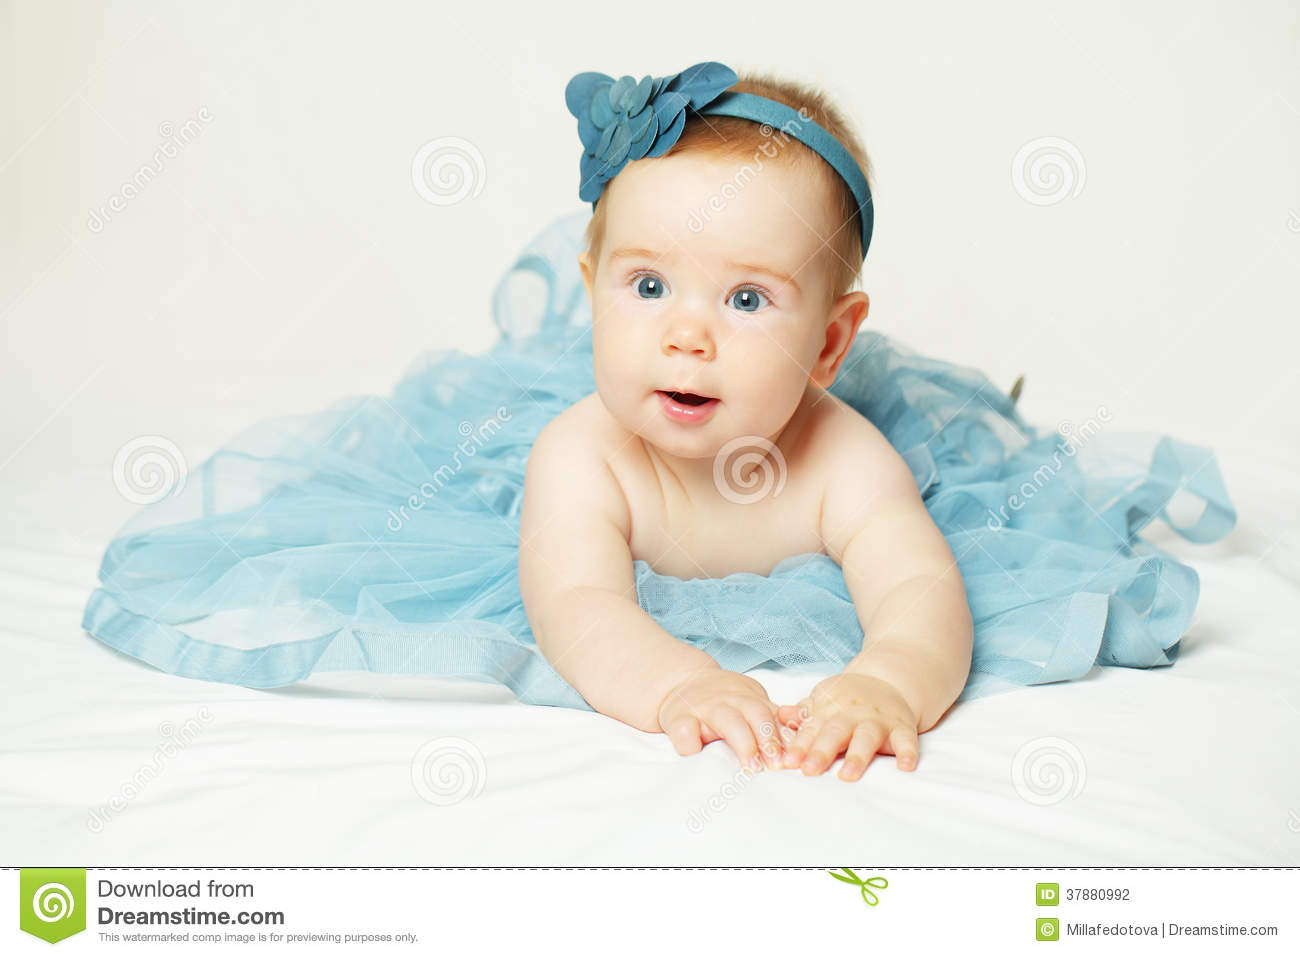 sweet little baby, cute small girl stock photo - image of hand